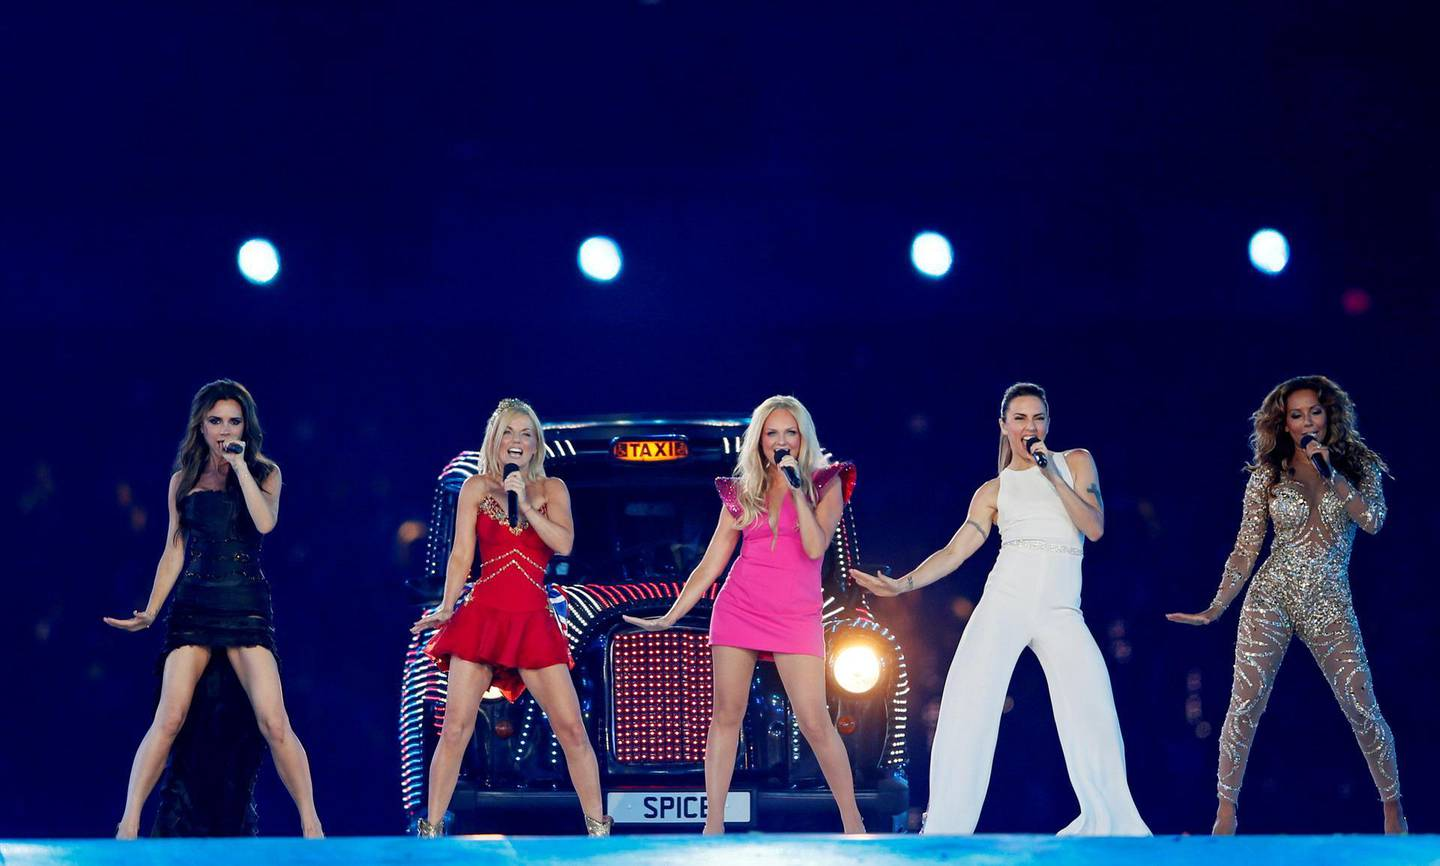 FILE PHOTO: FILE PHOTO: The Spice Girls perform during the closing ceremony of the London 2012 Olympic Games at the Olympic Stadium, August 12, 2012. REUTERS/Stefan Wermuth/File Photo